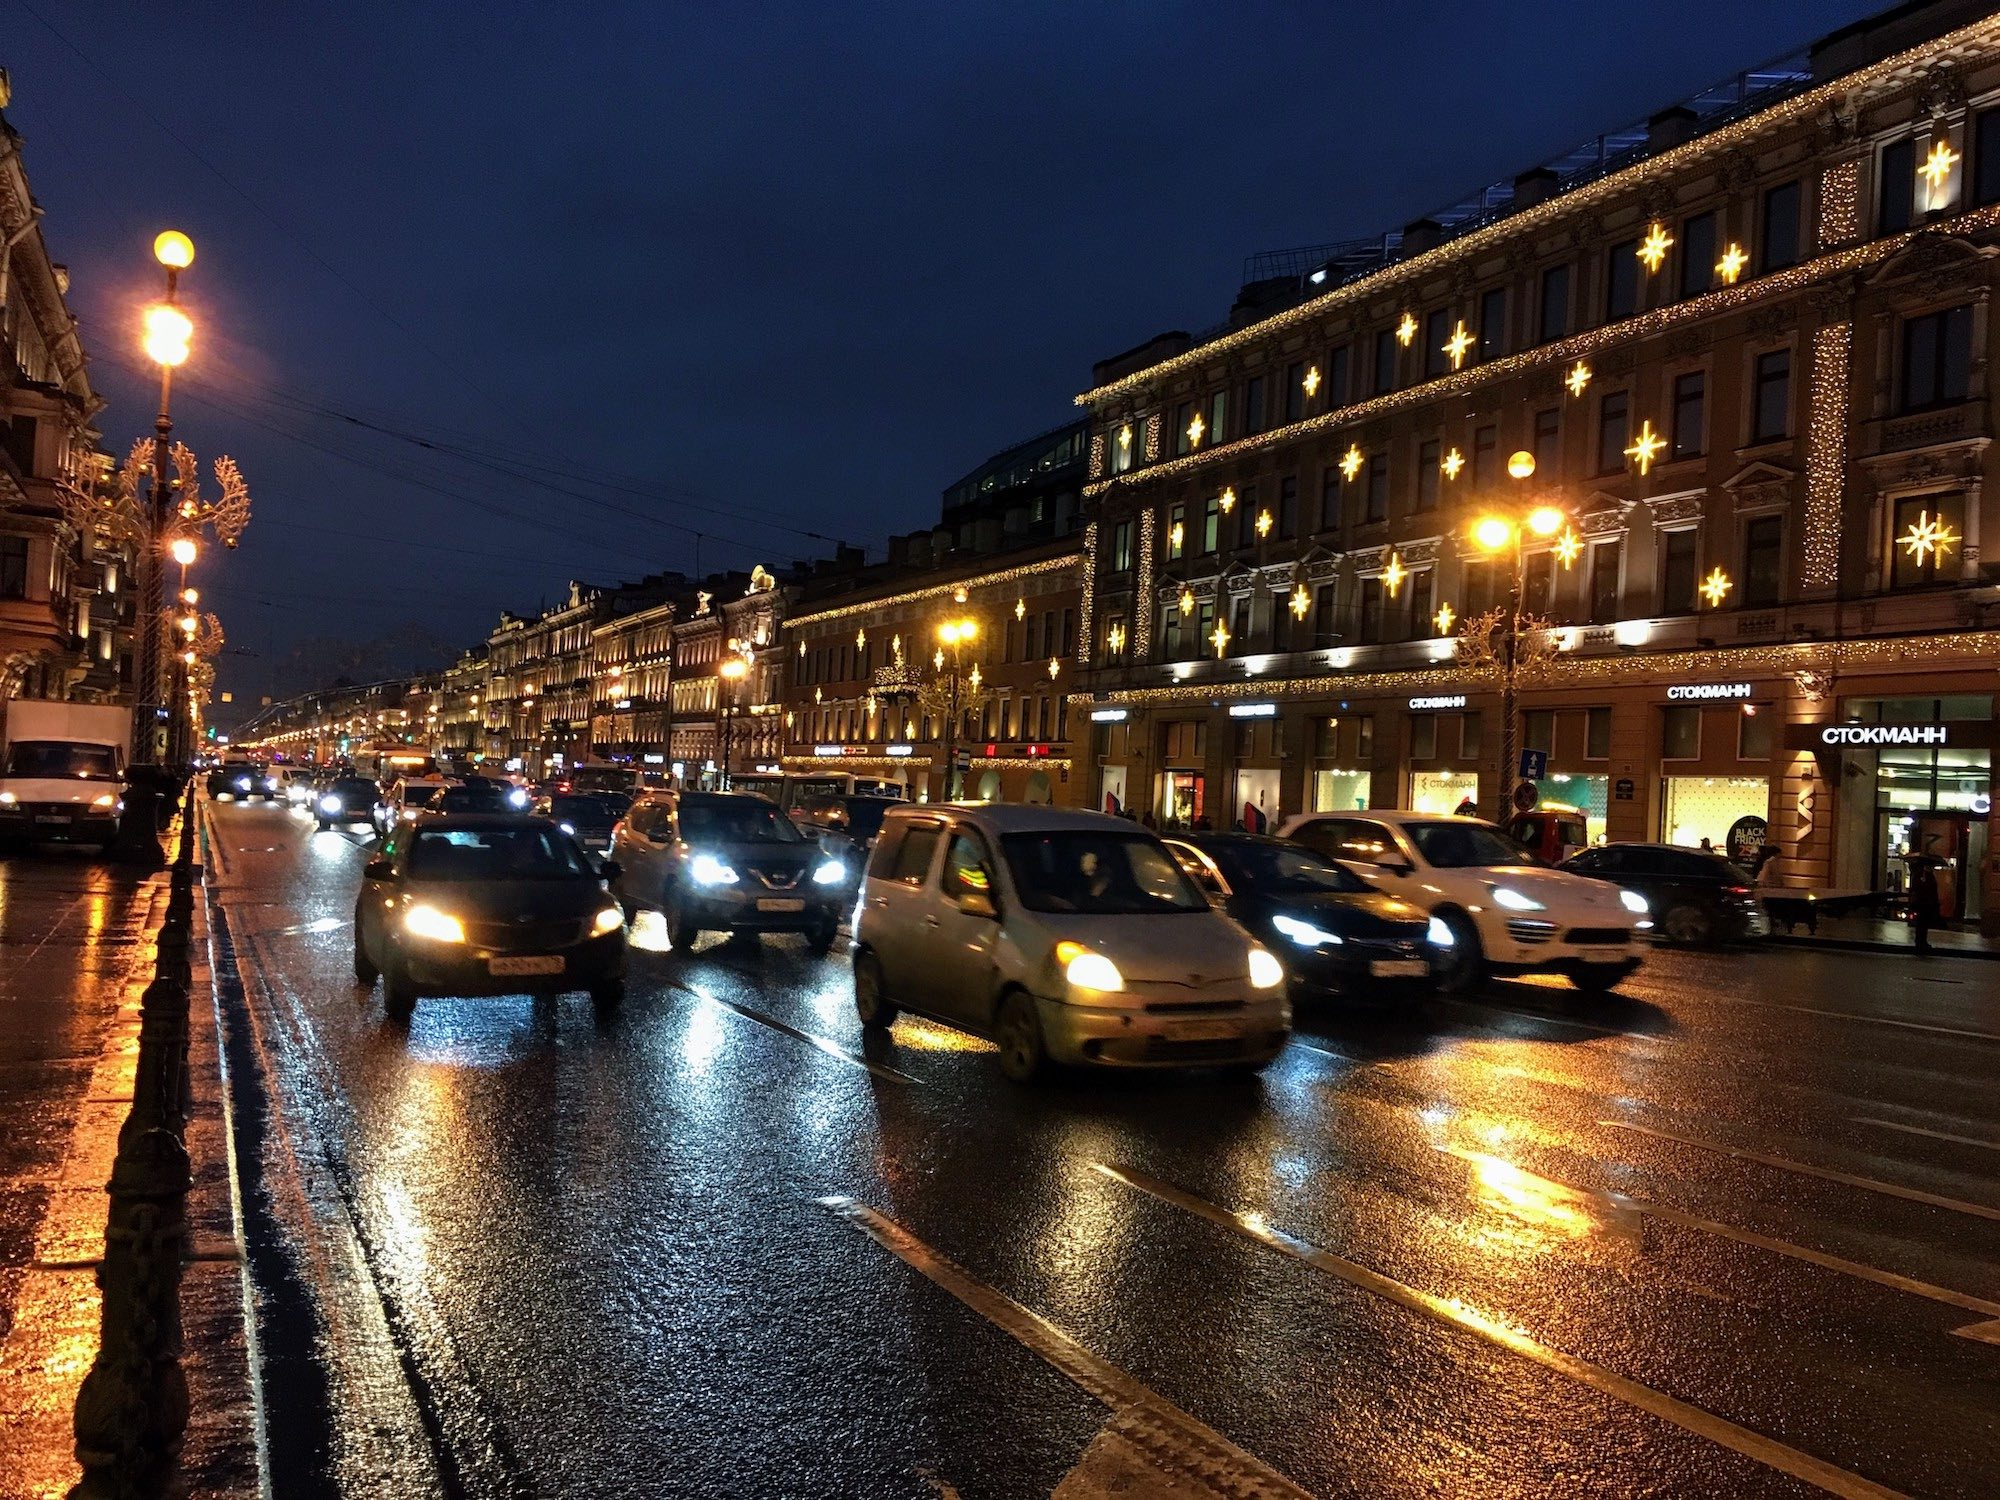 Nevsky Prospekt is a major road through the center of Saint Petersburg, and illuminated nicely during the night.